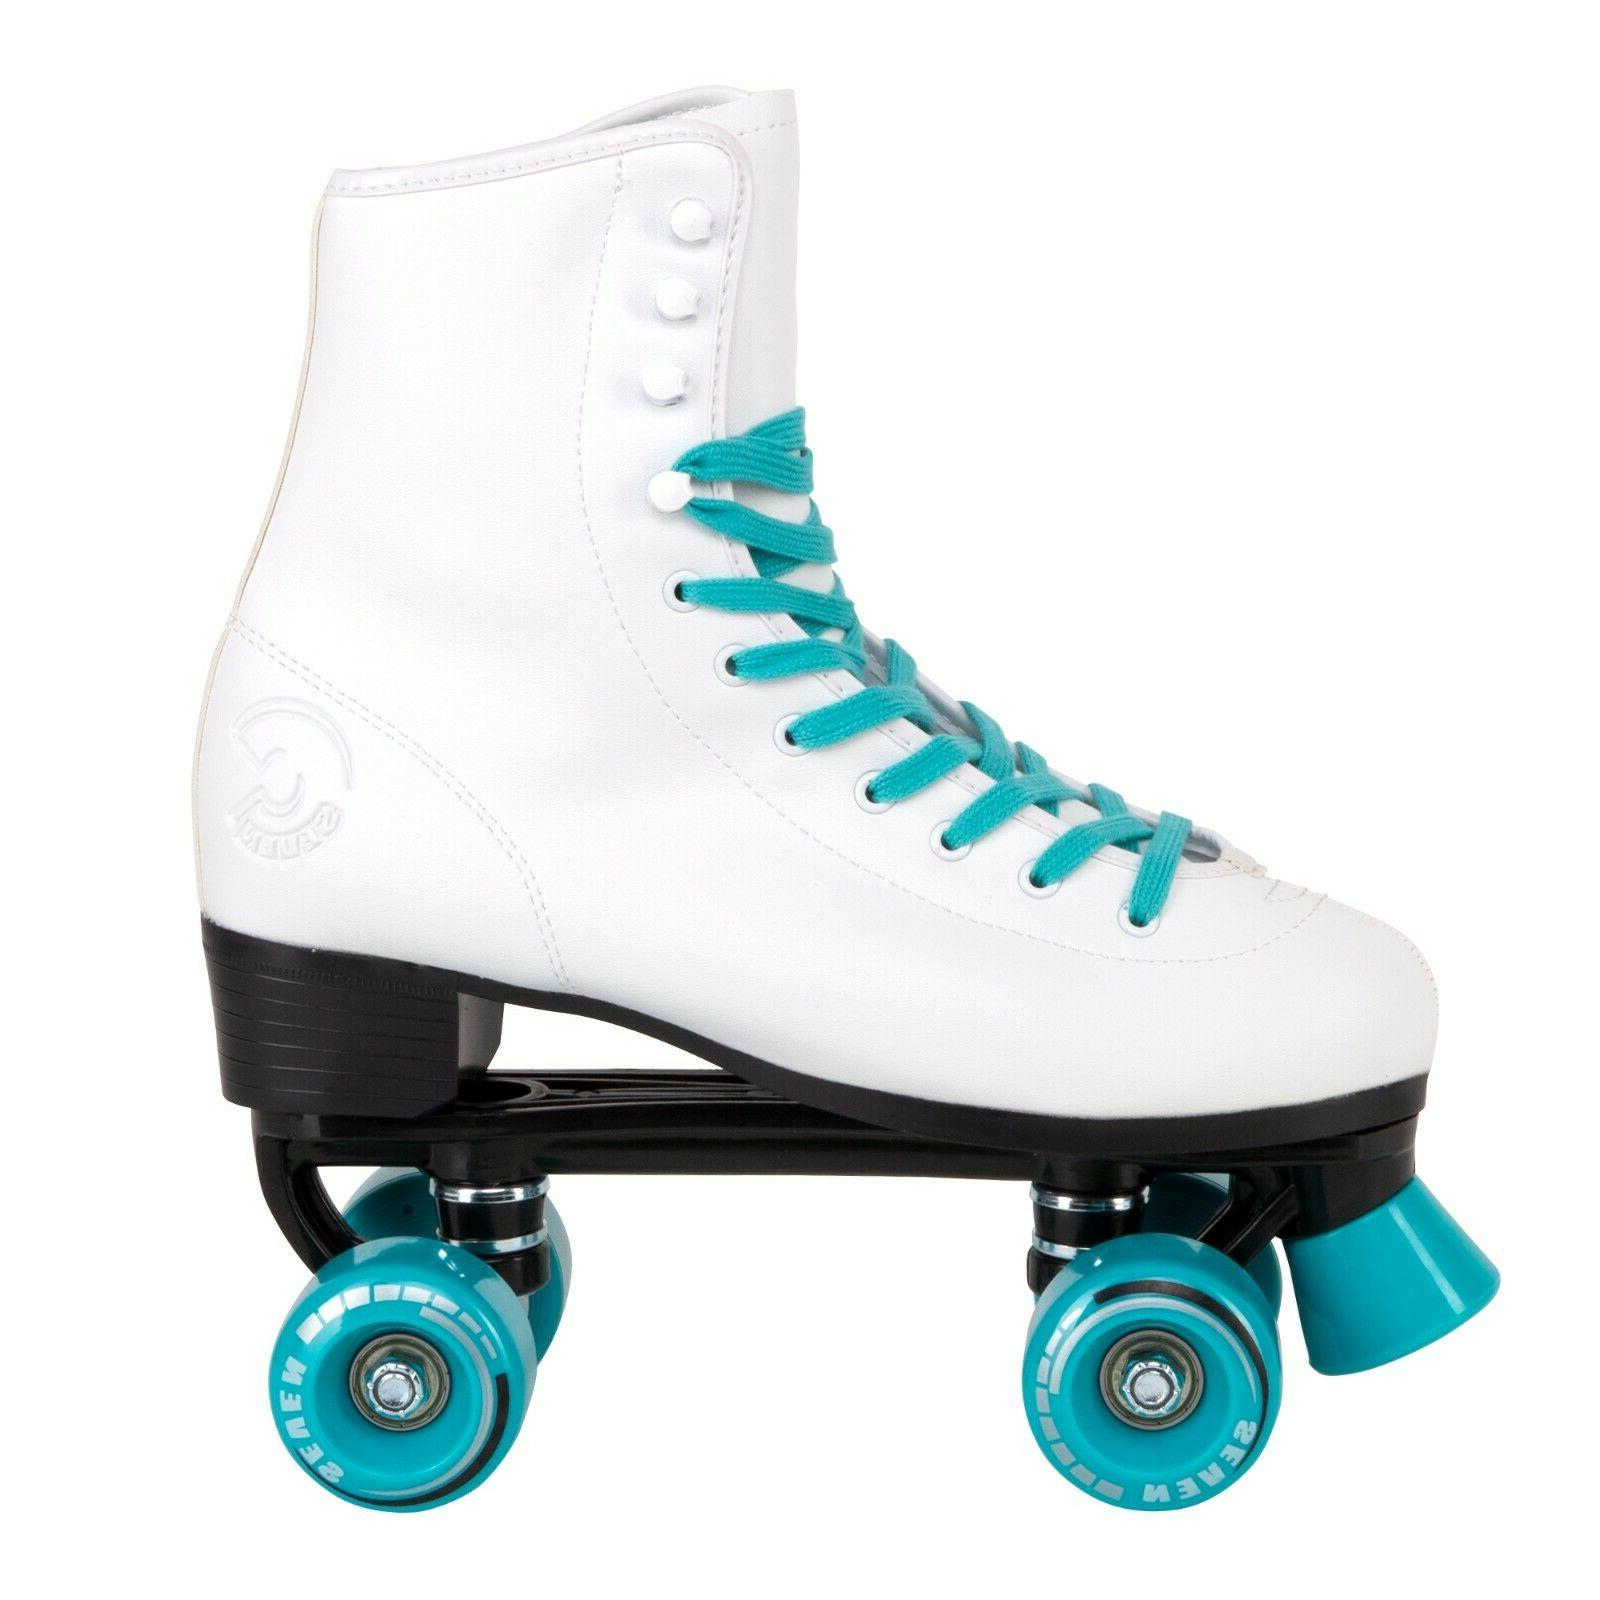 C7skates Faux Girls Christmas Gifts